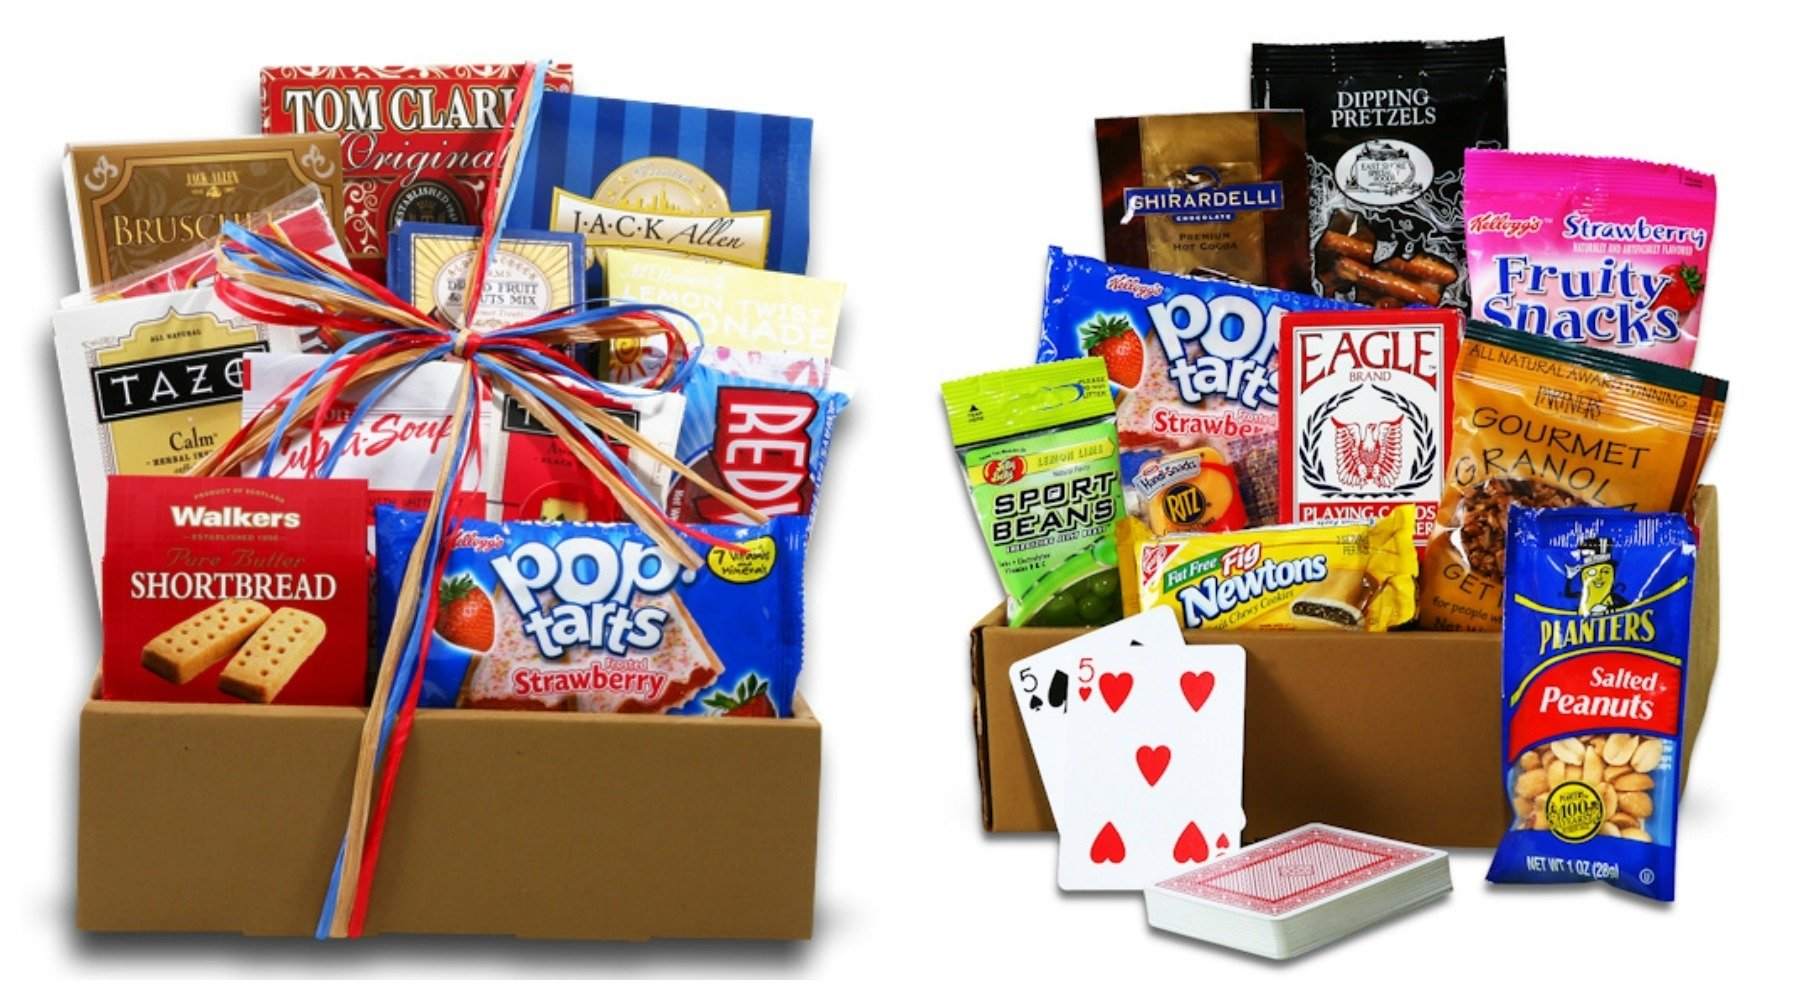 10 Trendy Care Packages For College Students Ideas gift ideas for college students aa gifts baskets idea blog 3 2021